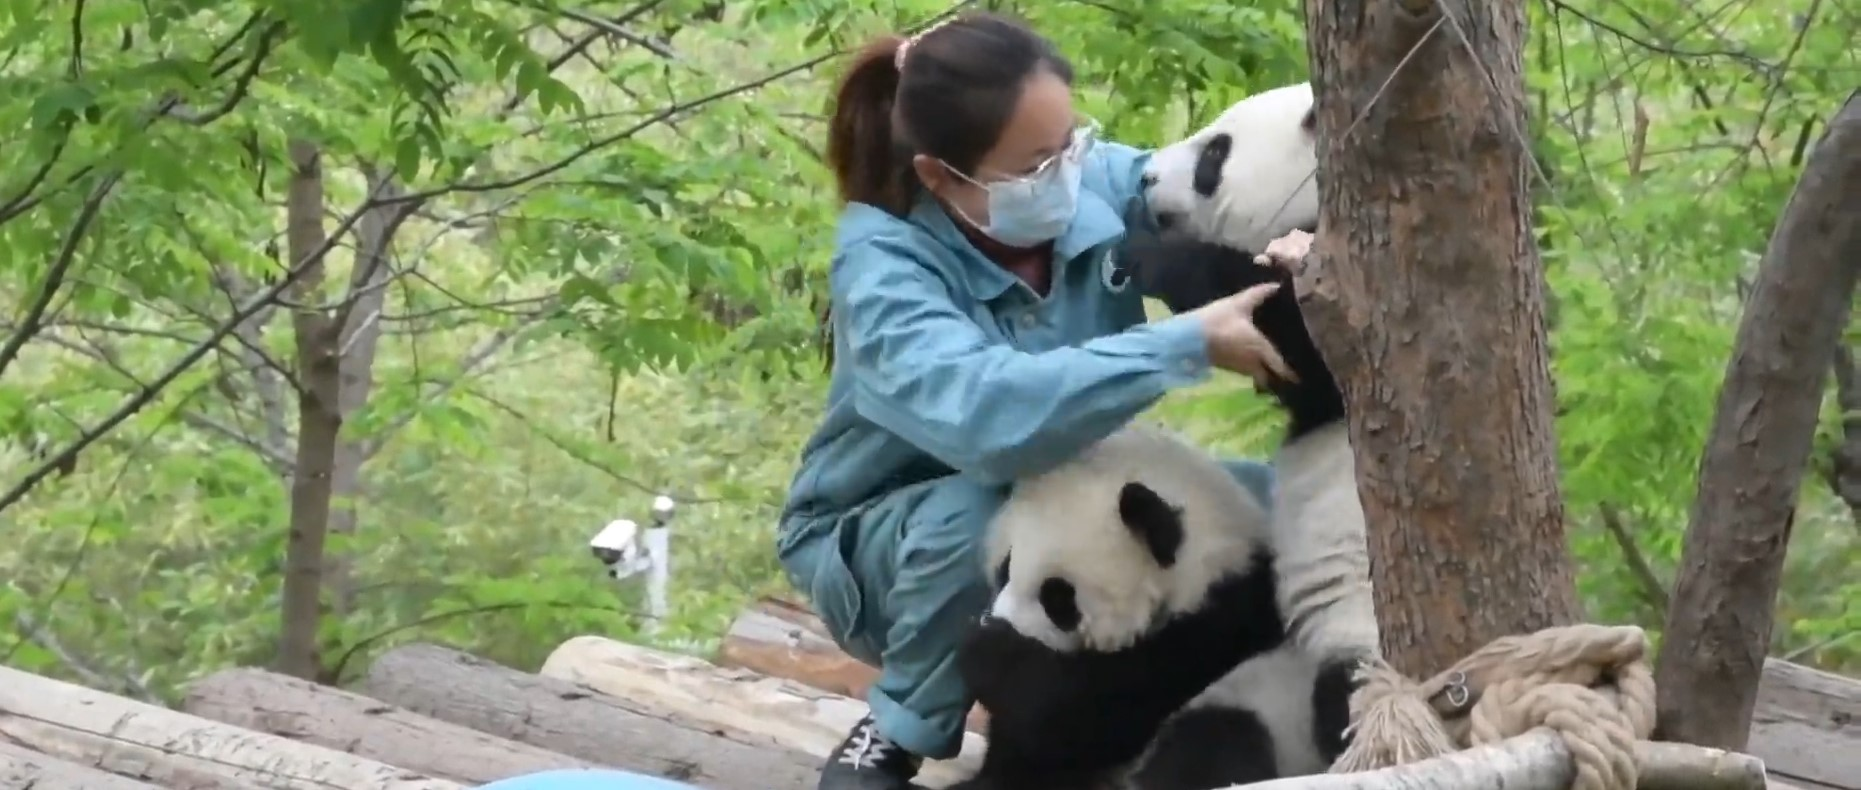 Immersed in Cuteness: A day in the life of a panda breeder